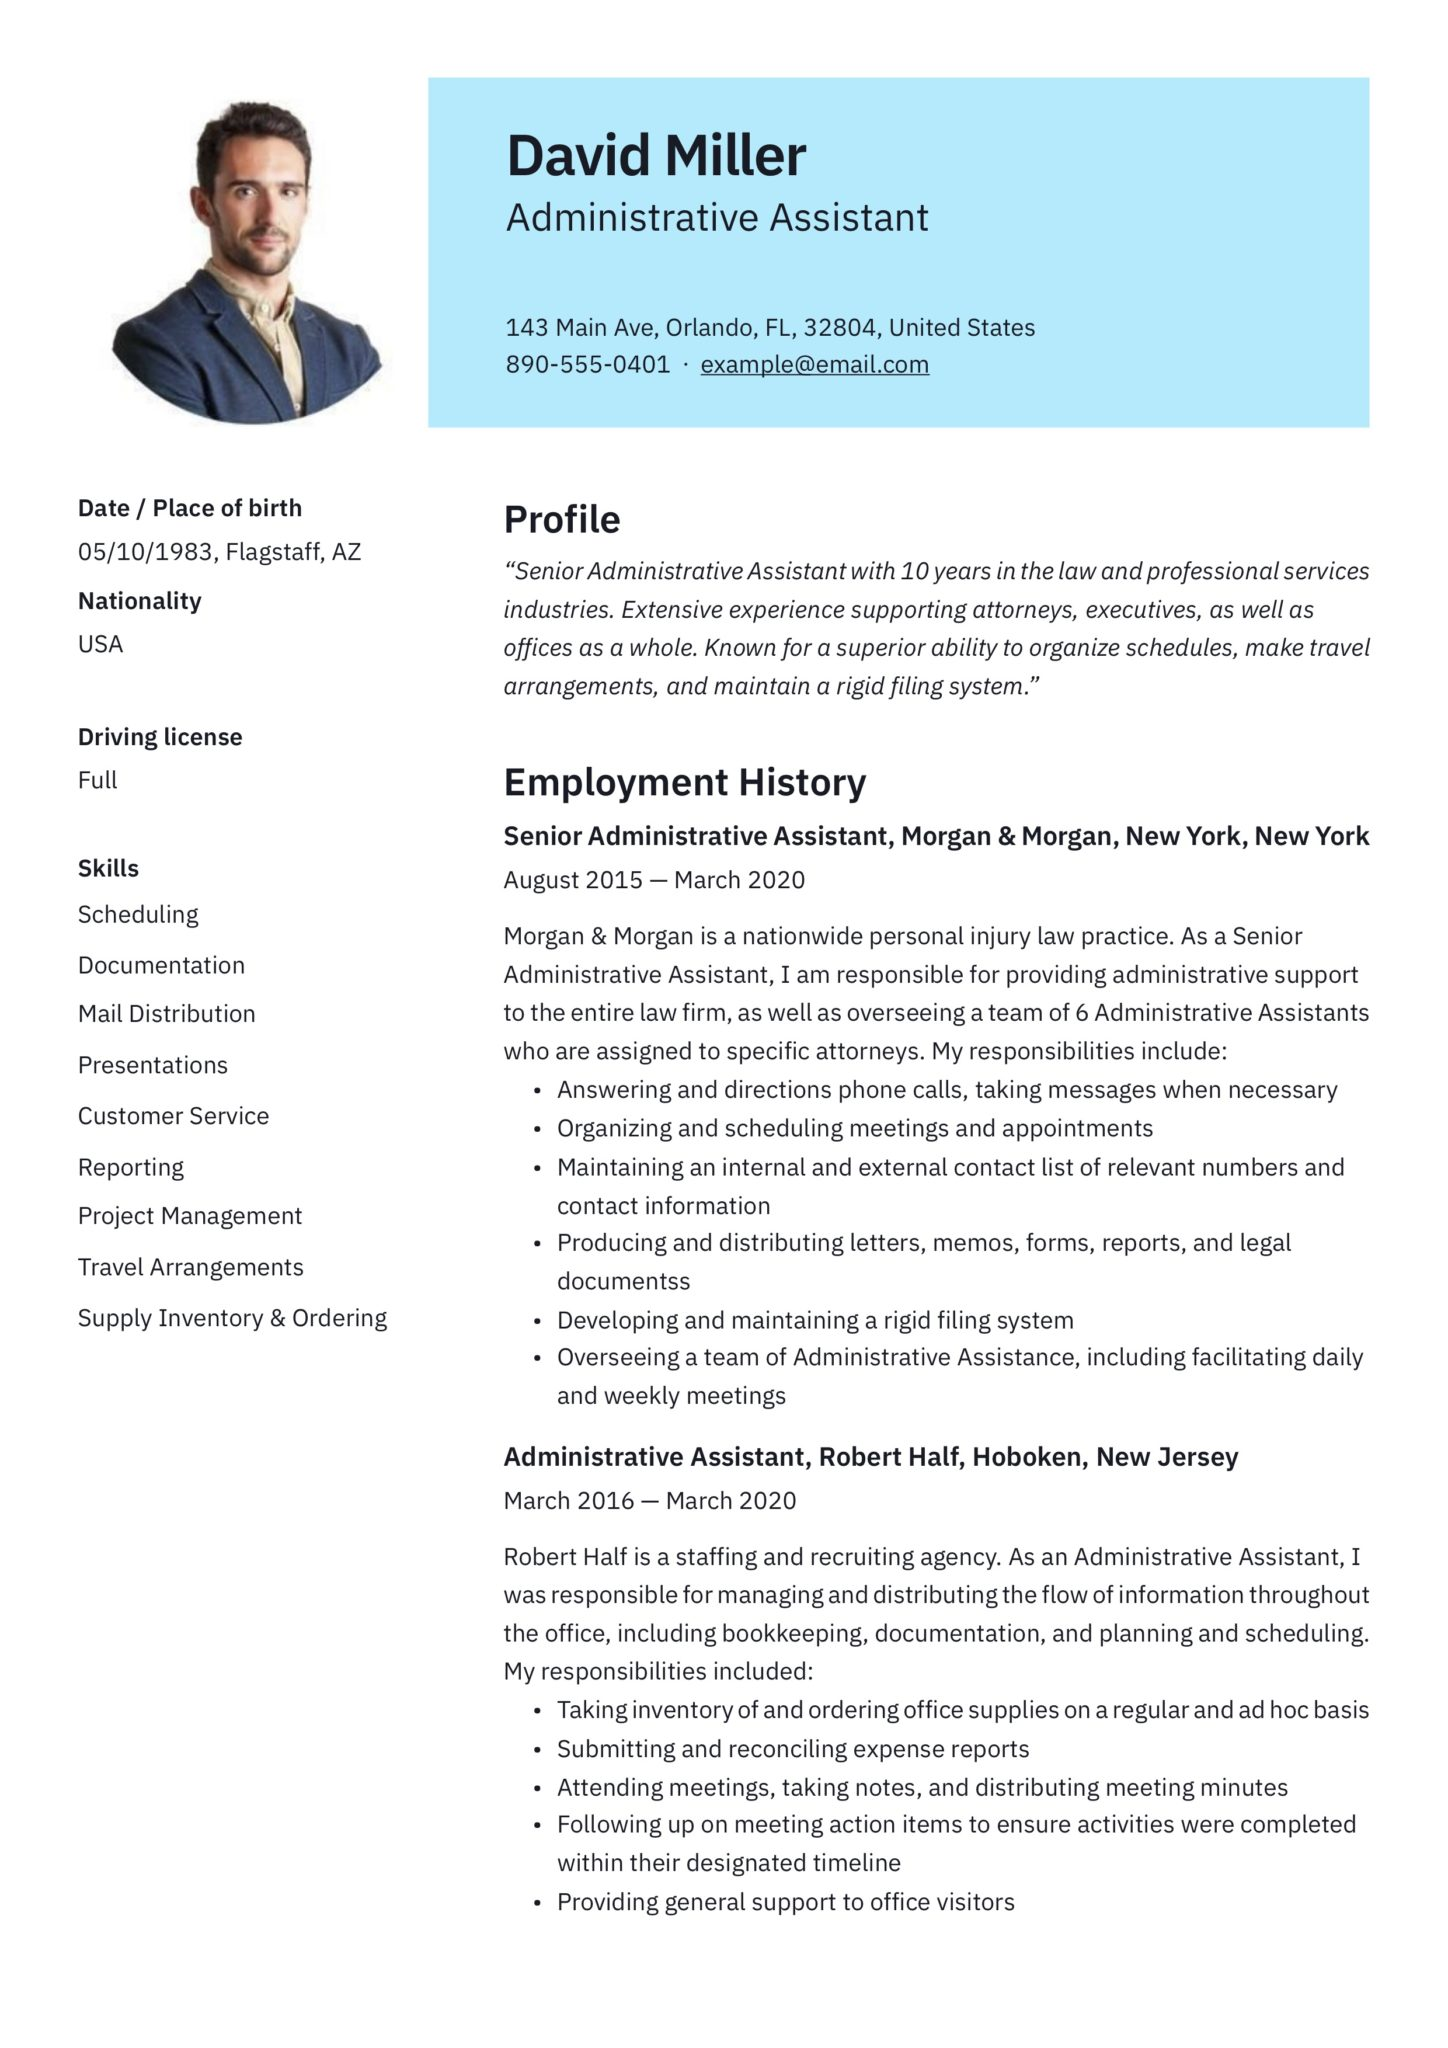 free administrative assistant resumes writing guide pdf resume templates scaled email Resume Free Administrative Assistant Resume Templates